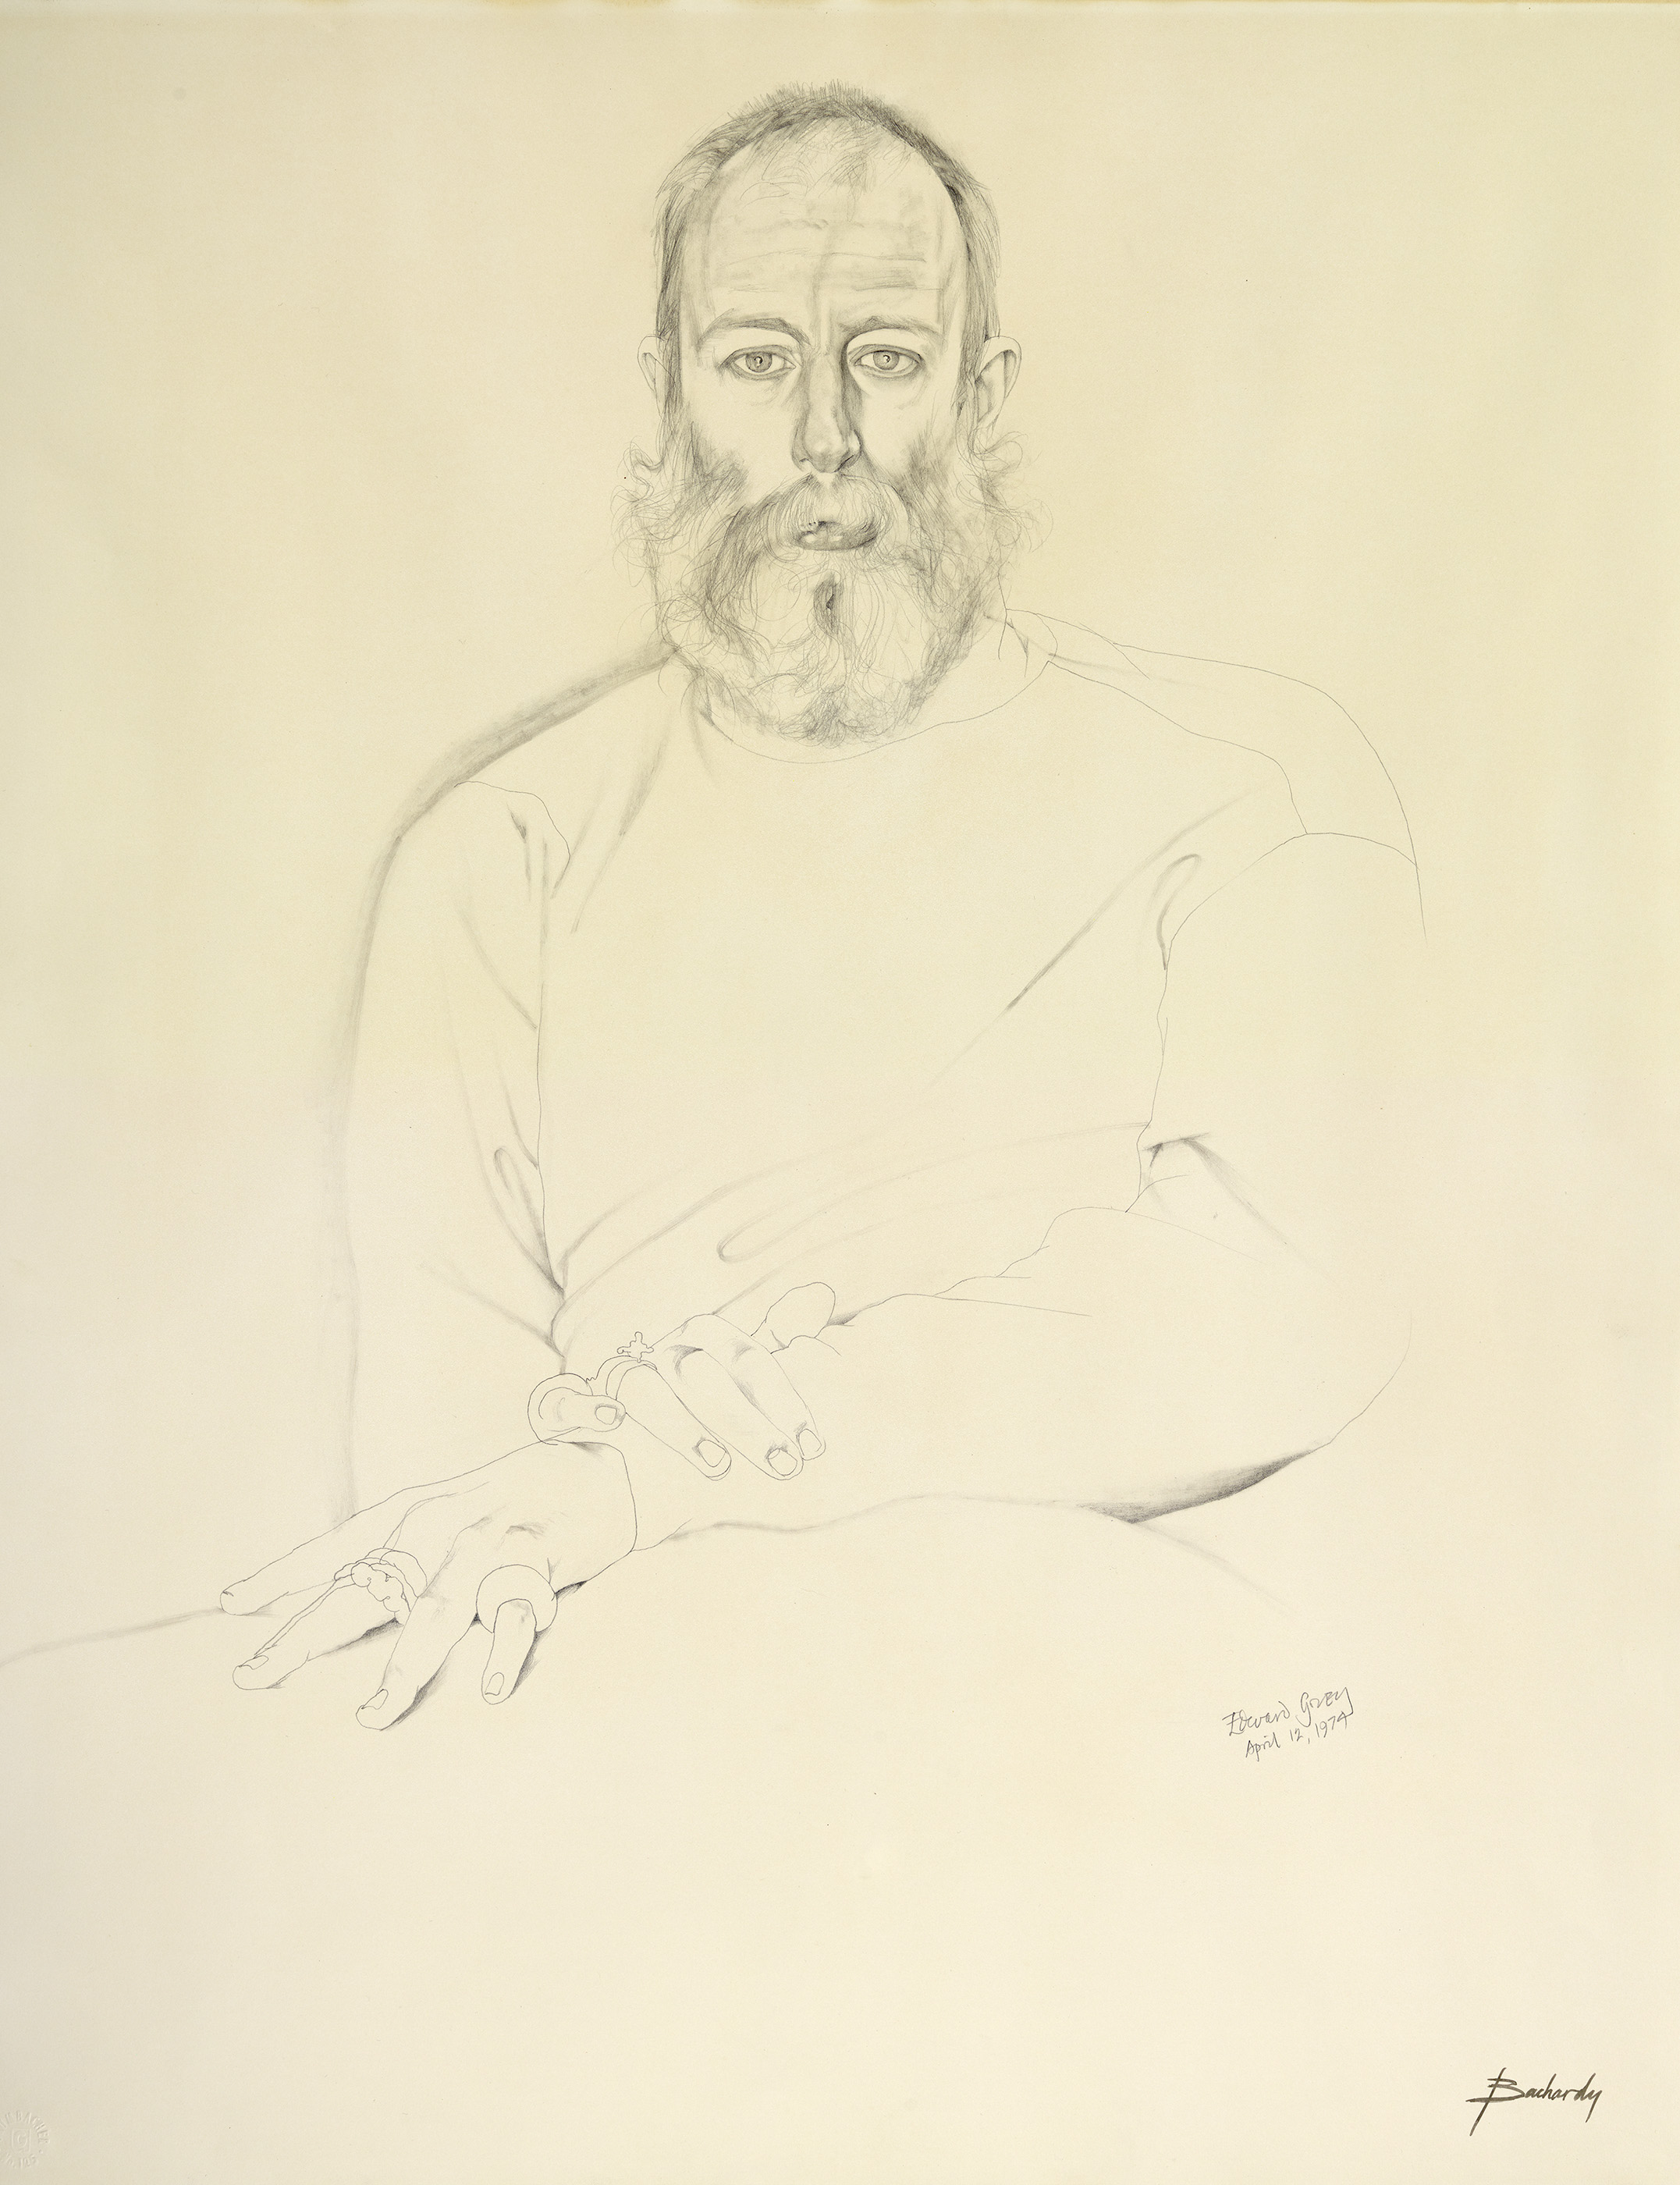 Drawing of a man with a very bushy beard